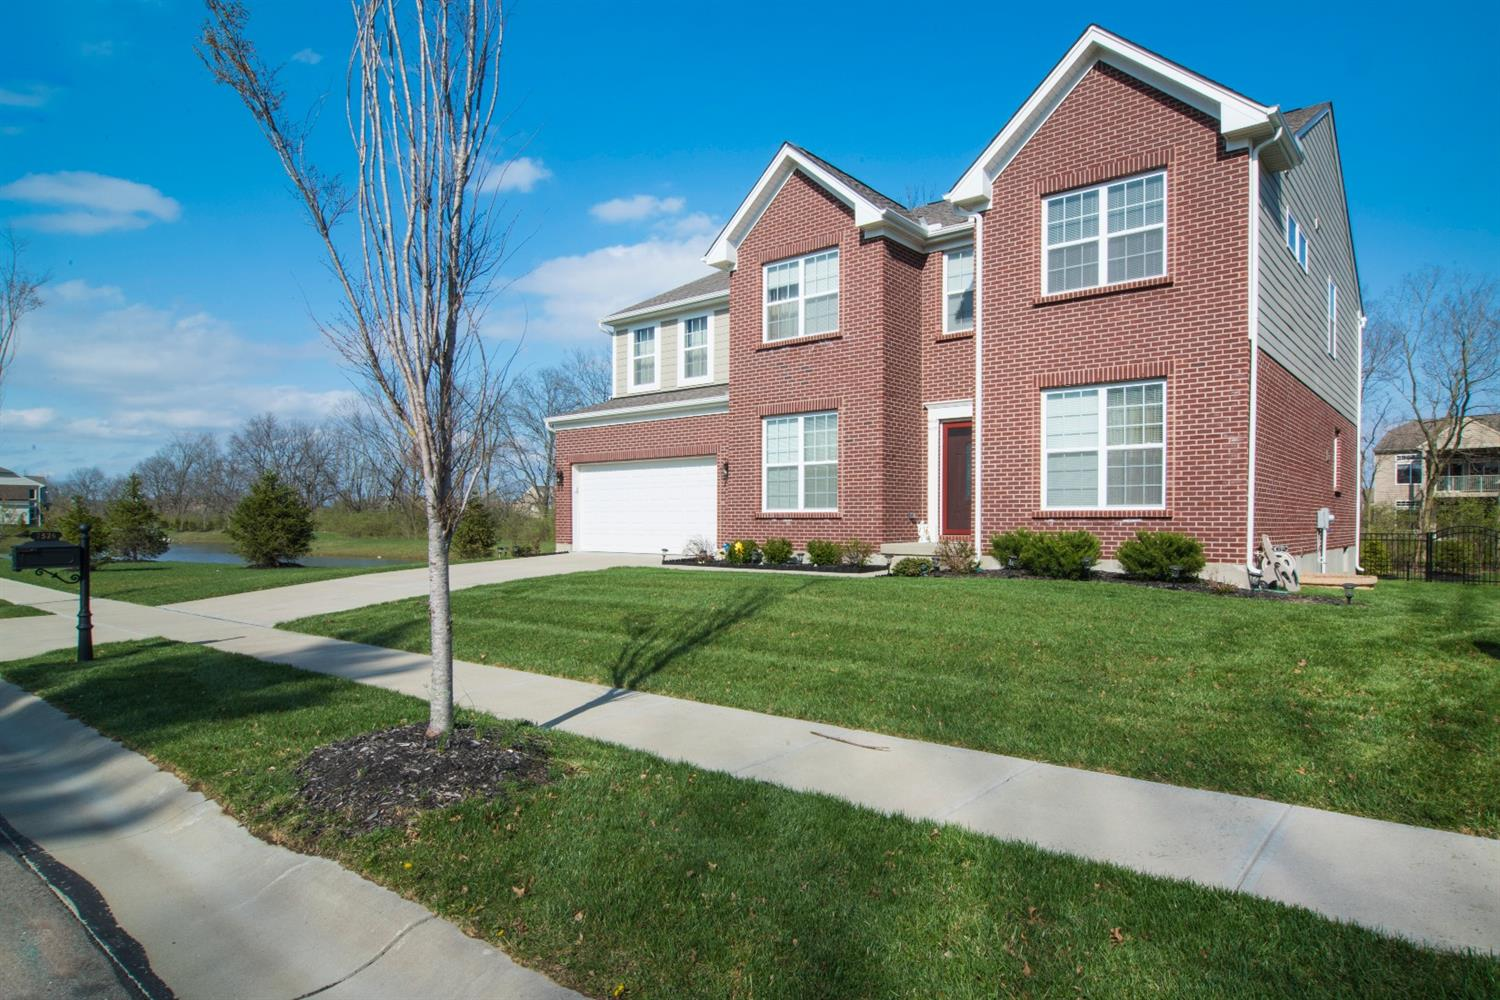 Property for sale at 7324 Middleton Way, Mason,  OH 45040